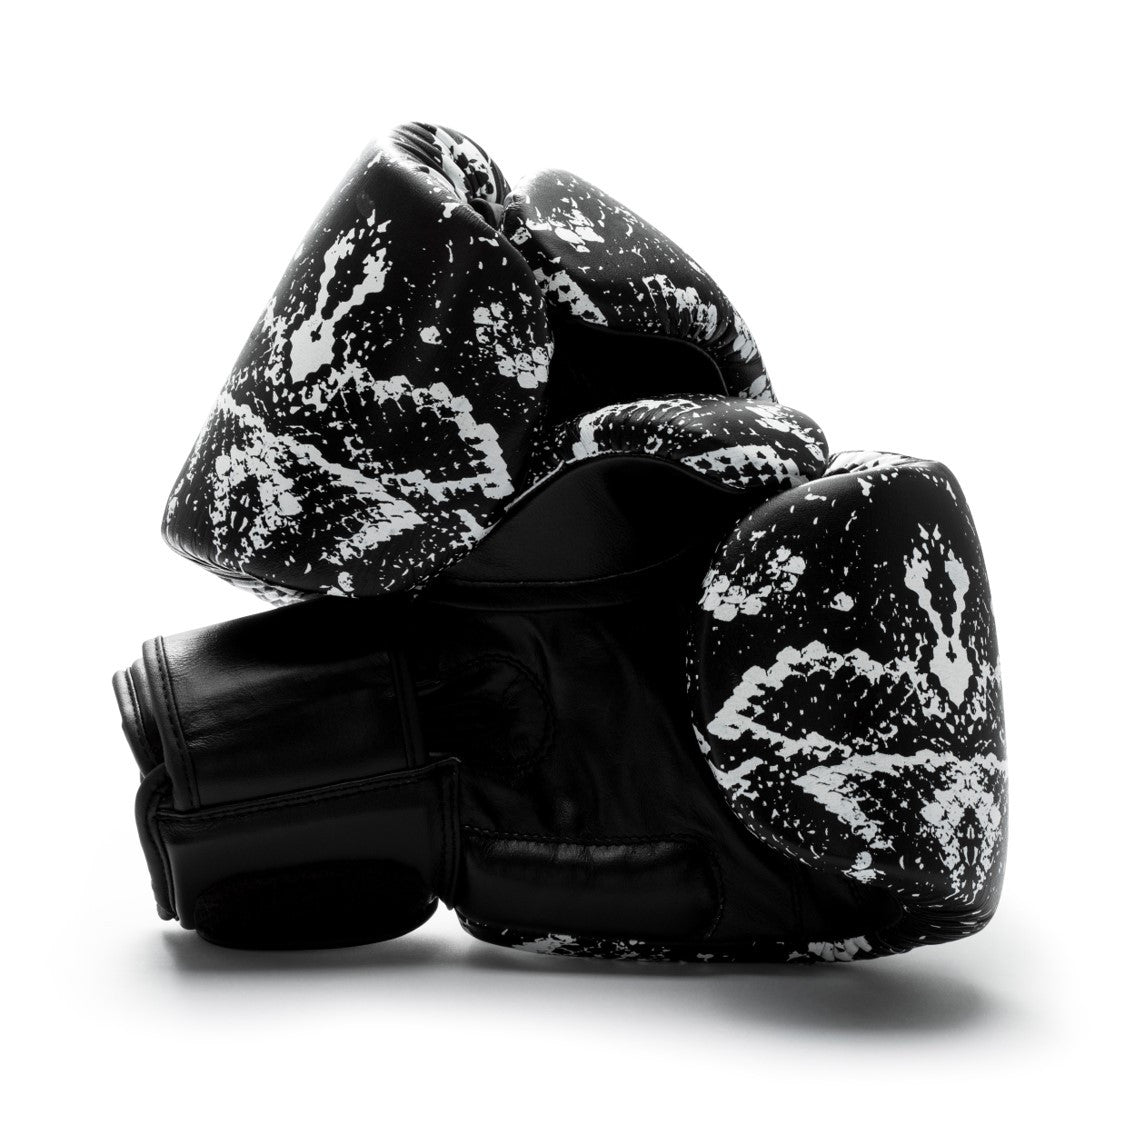 UNIT NINE Black Python Boxing Gloves 2